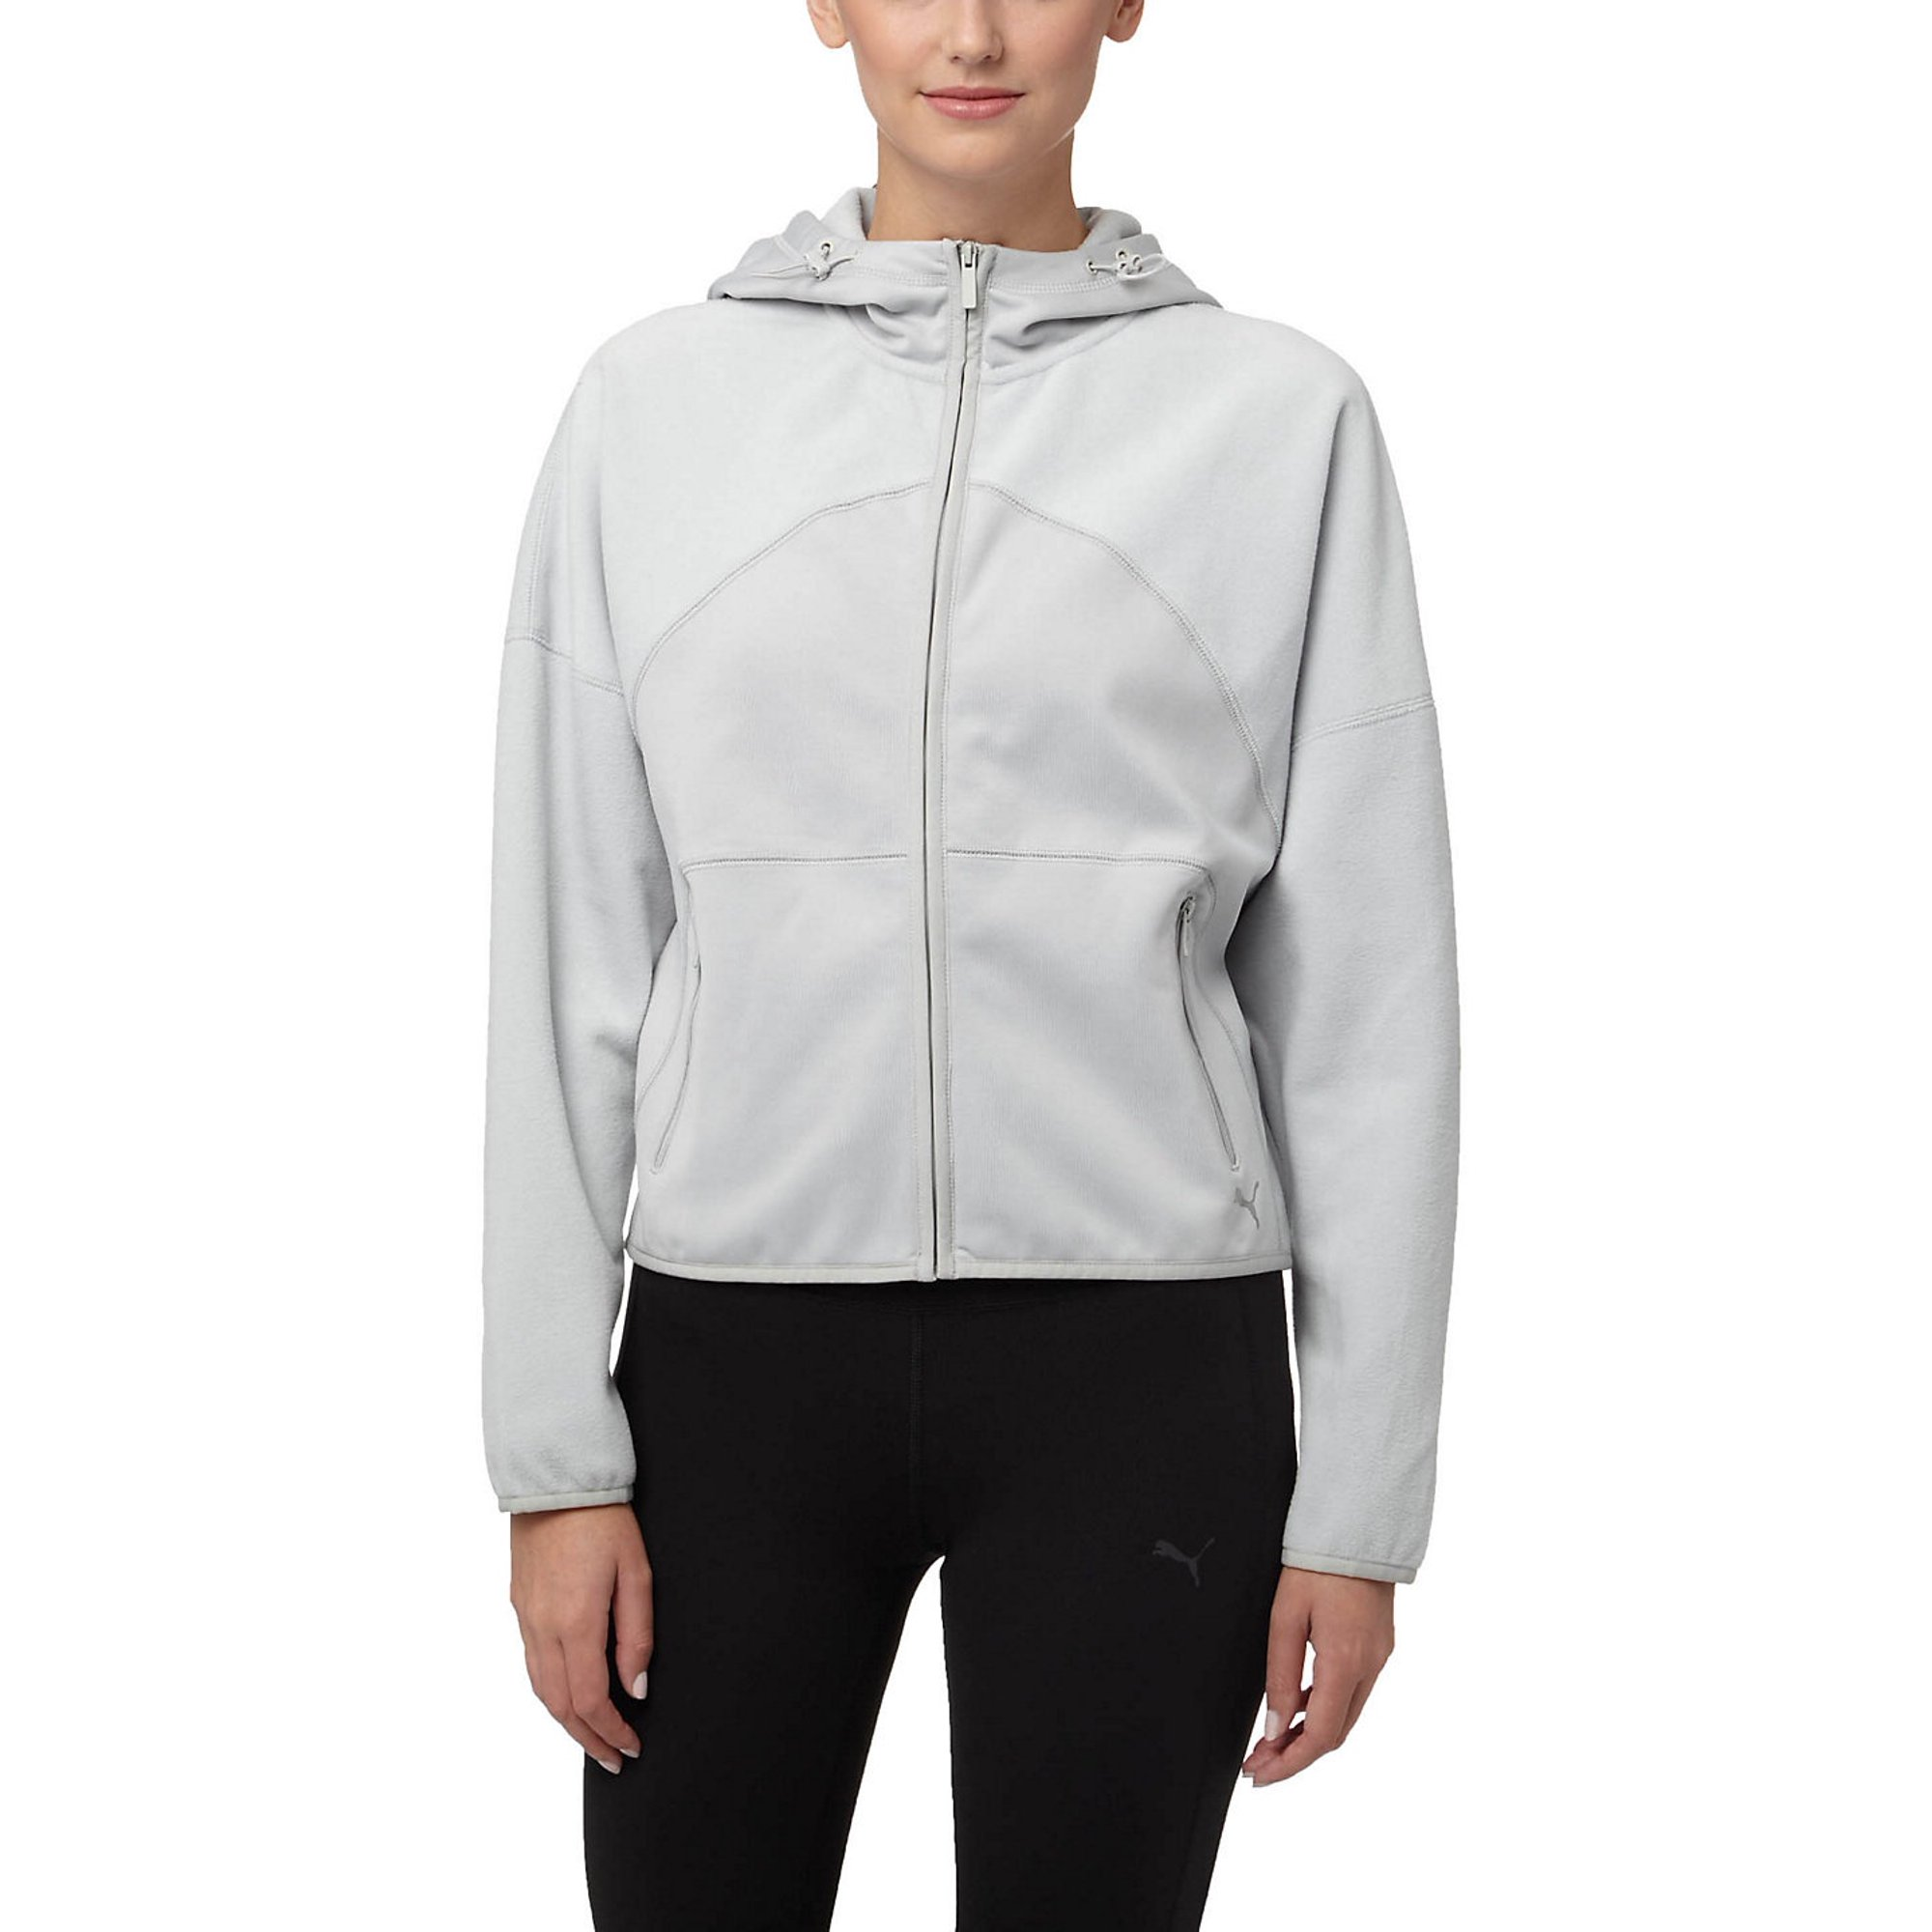 ee4f6529af52a Buy Puma Yogini Warm Full Zip Women's Hoodie Grey 514576-03 ...